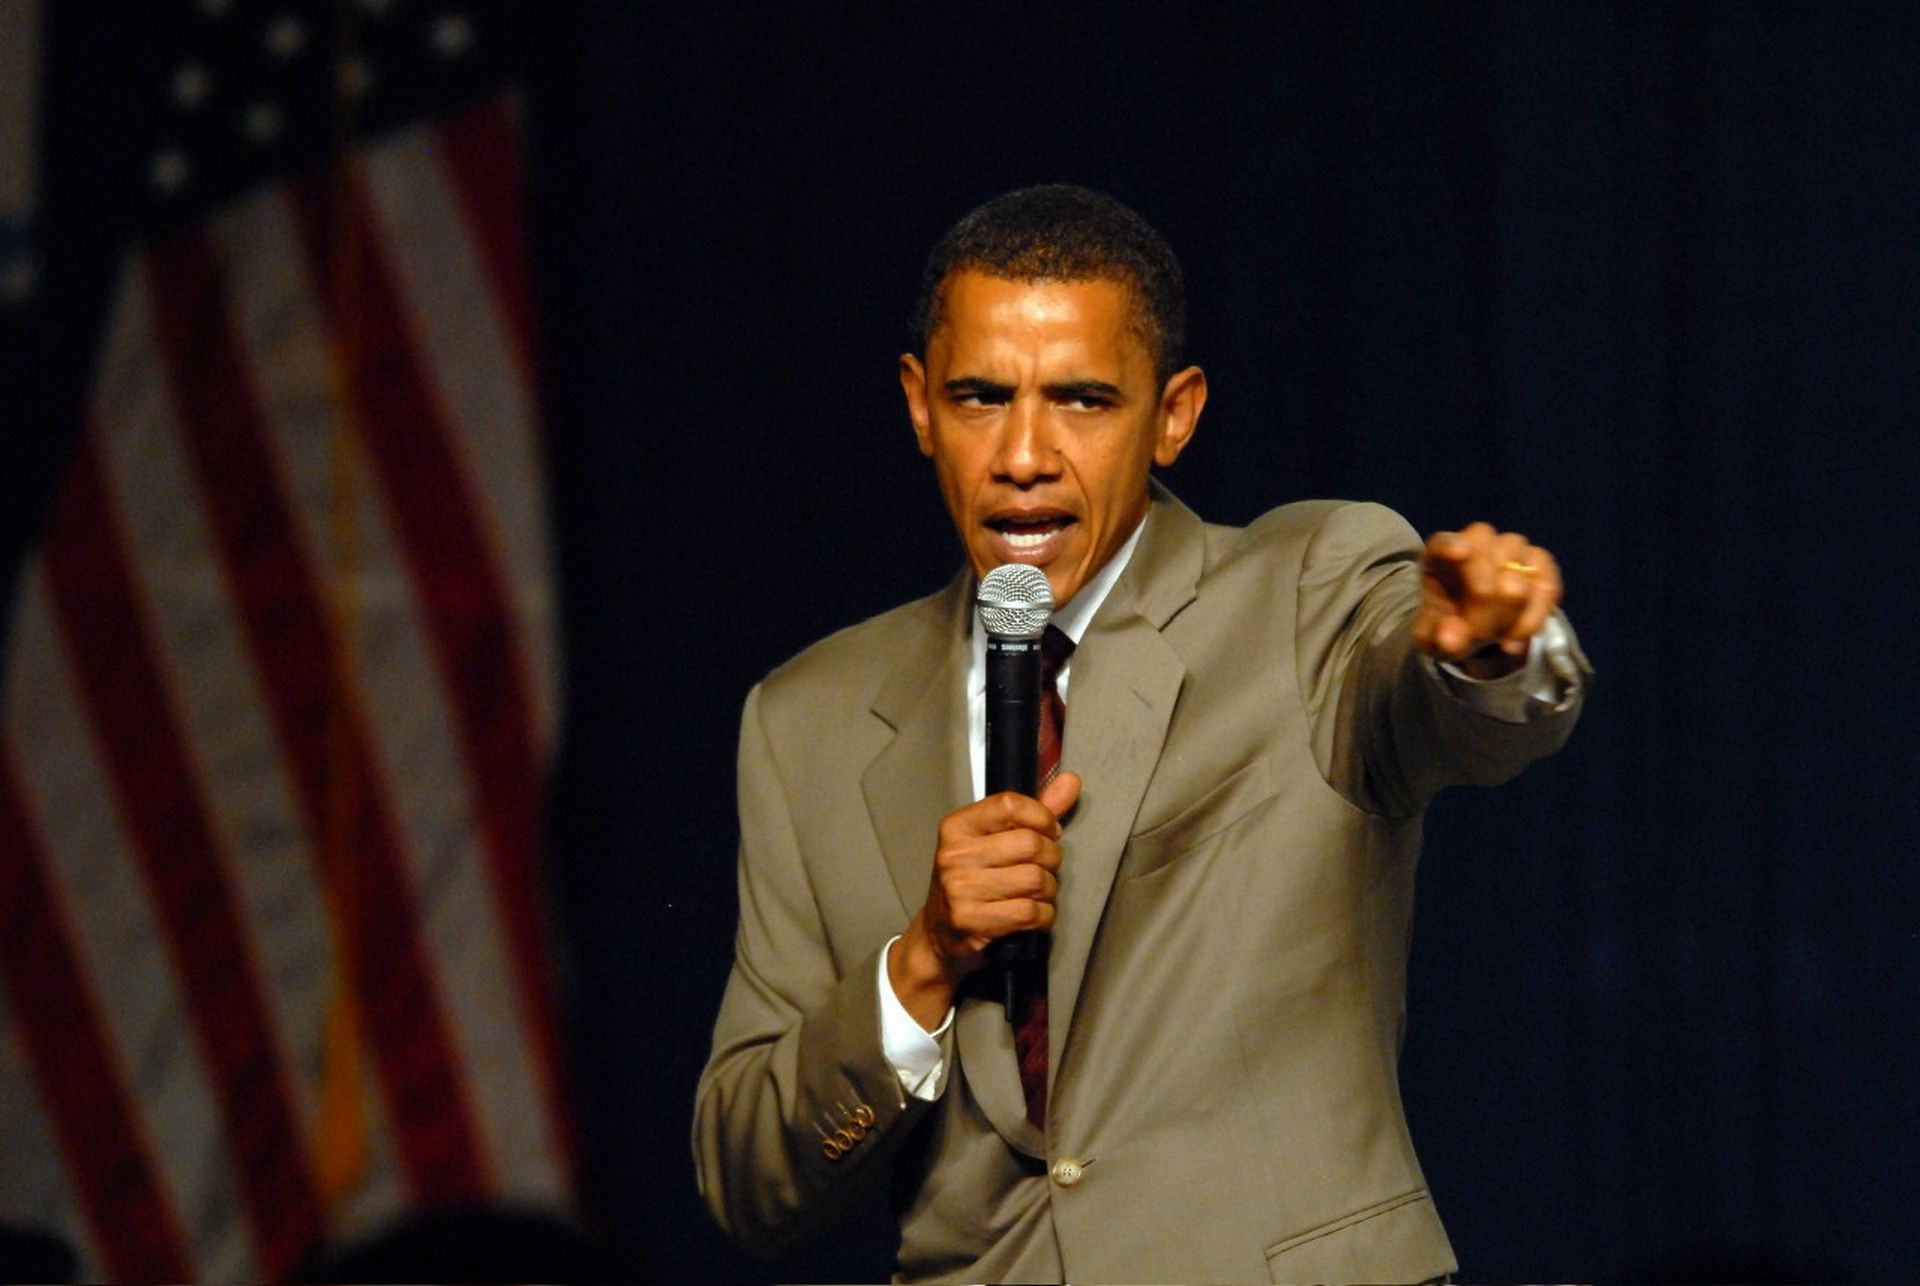 1920x1286 1920x1080 funny obama wallpaper anti obama wallpaper obama desktop wallpaper  .